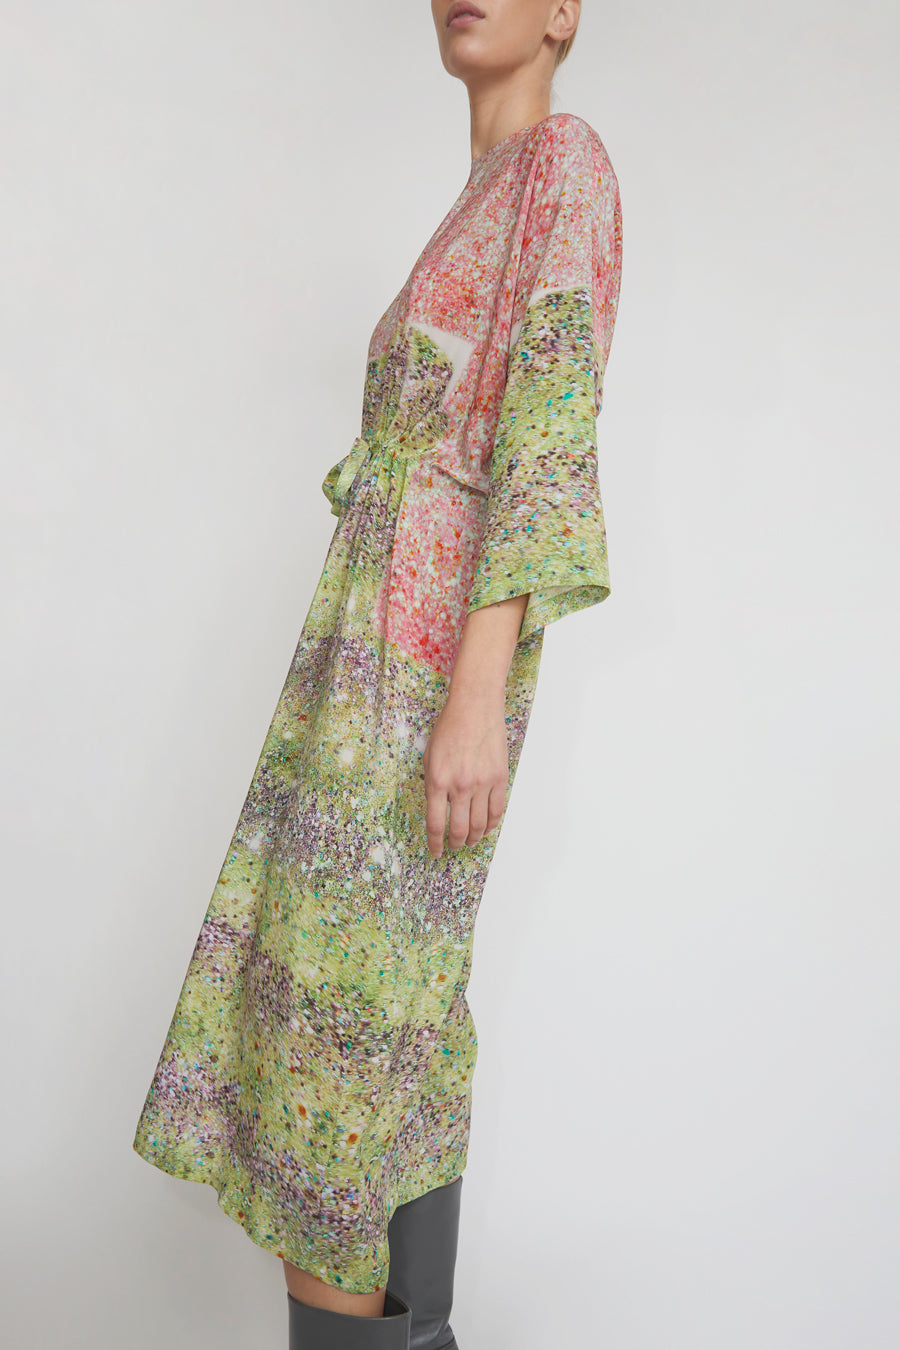 Anntian Simple Dress in Print L Light